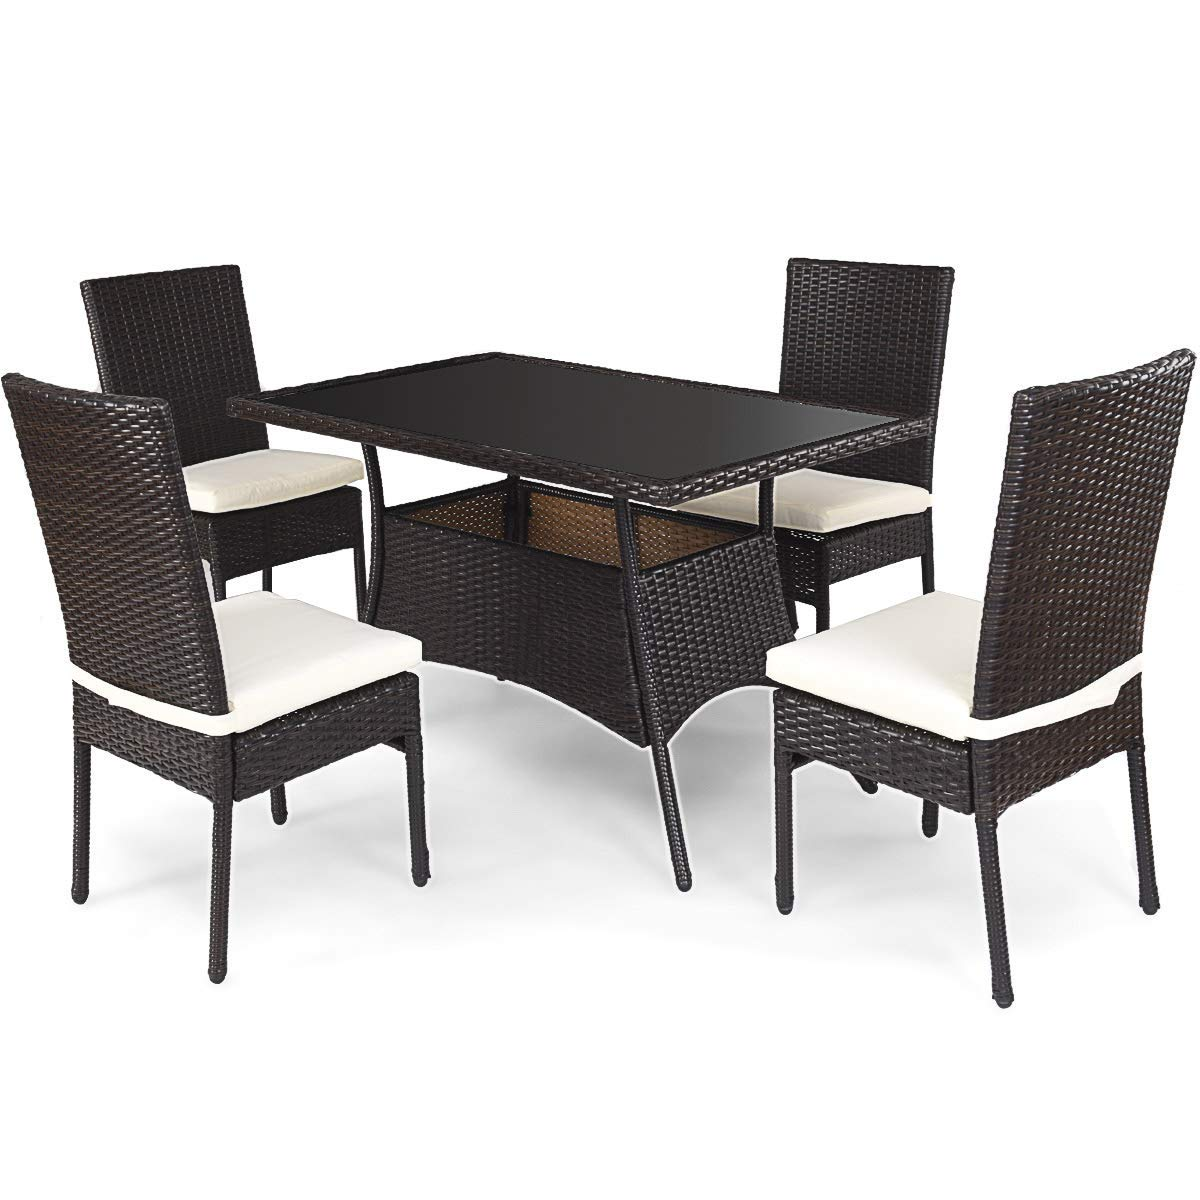 Tangkula Patio Furniture, 5 PCS All Weather Resistant Heavy Duty Wicker Dining Set with Chairs, Perfect for Balcony Patio Garden Poolside, 5 Piece Wicker Table and Chairs Set by Tangkula (Image #8)